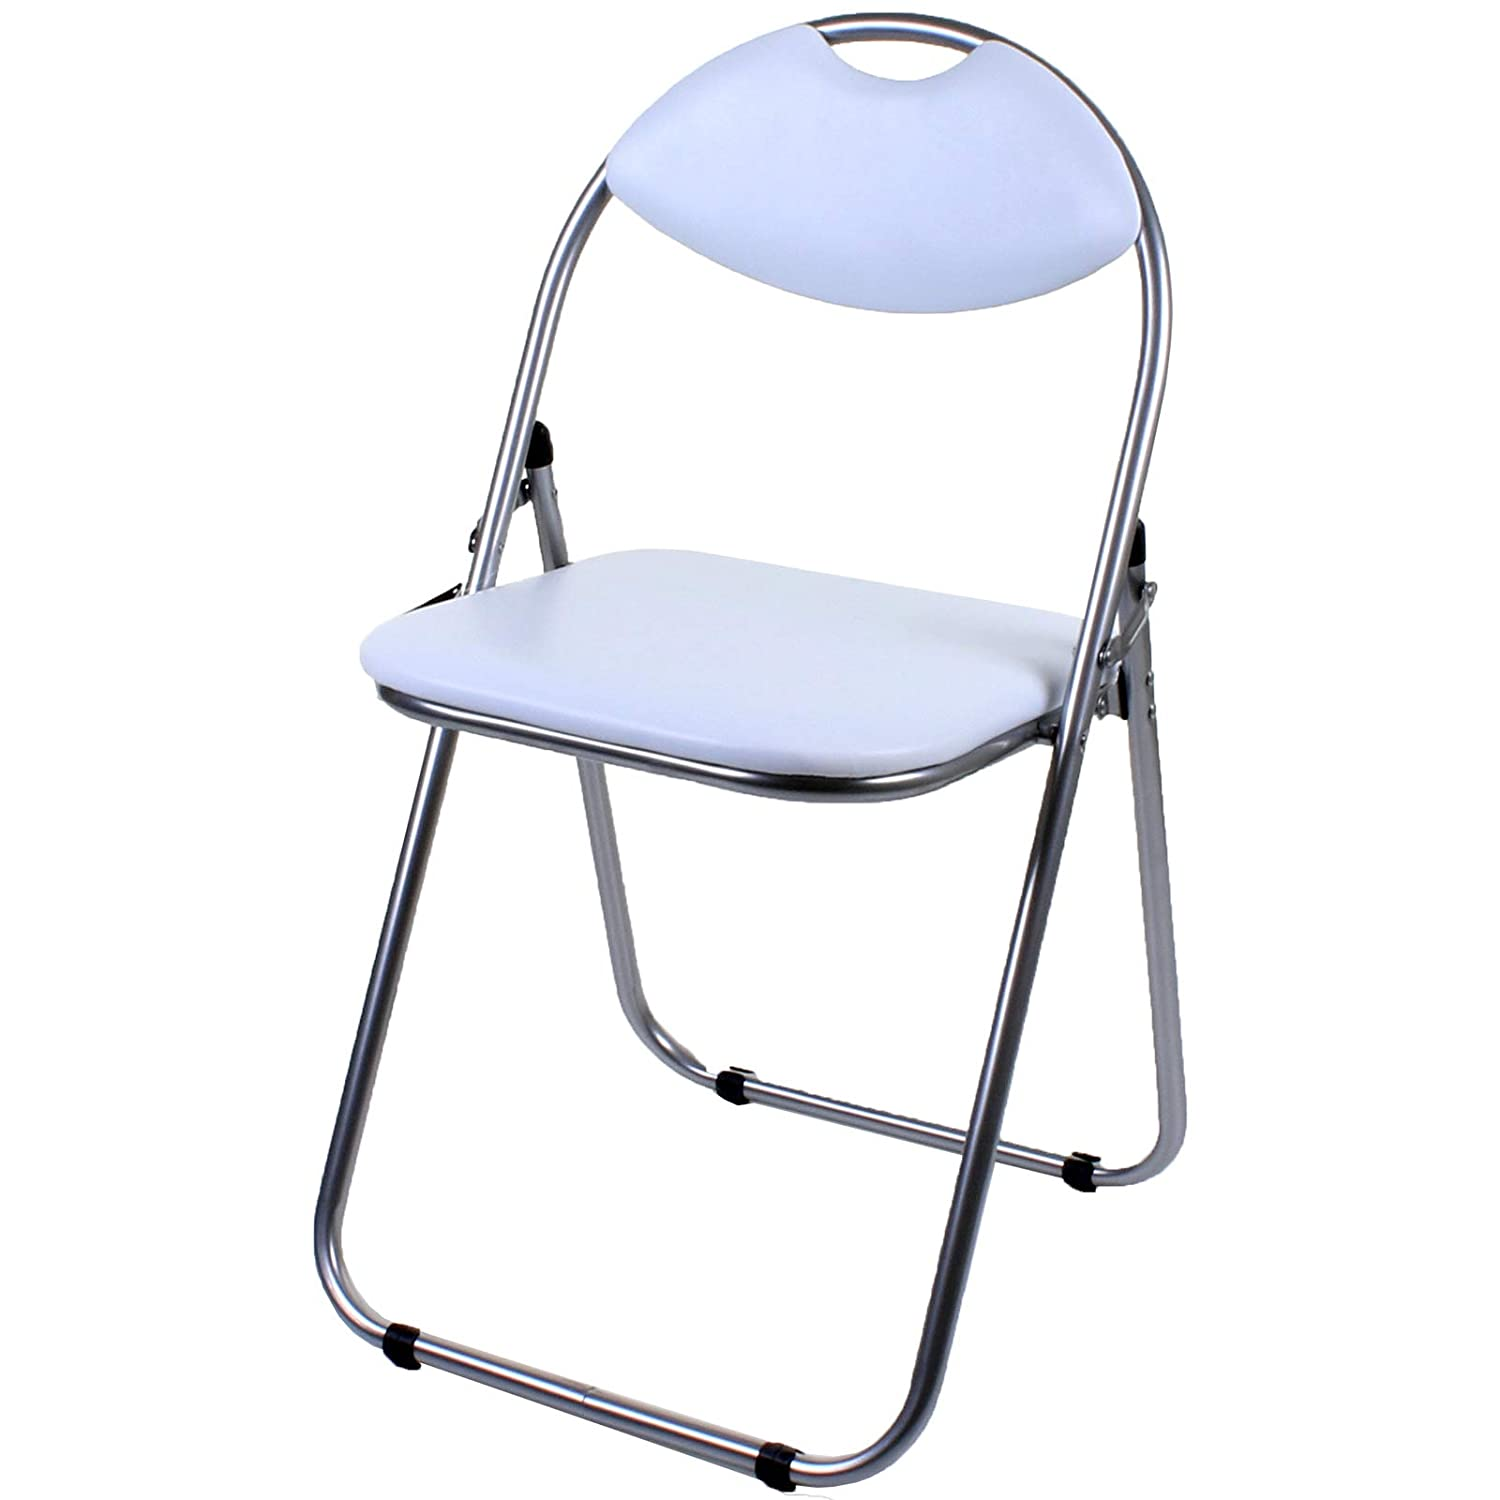 Super Marko Furniture Black Pink Faux Leather Folding Chair Padded Seat Back Rest Computer Office 1 Chair White Pabps2019 Chair Design Images Pabps2019Com